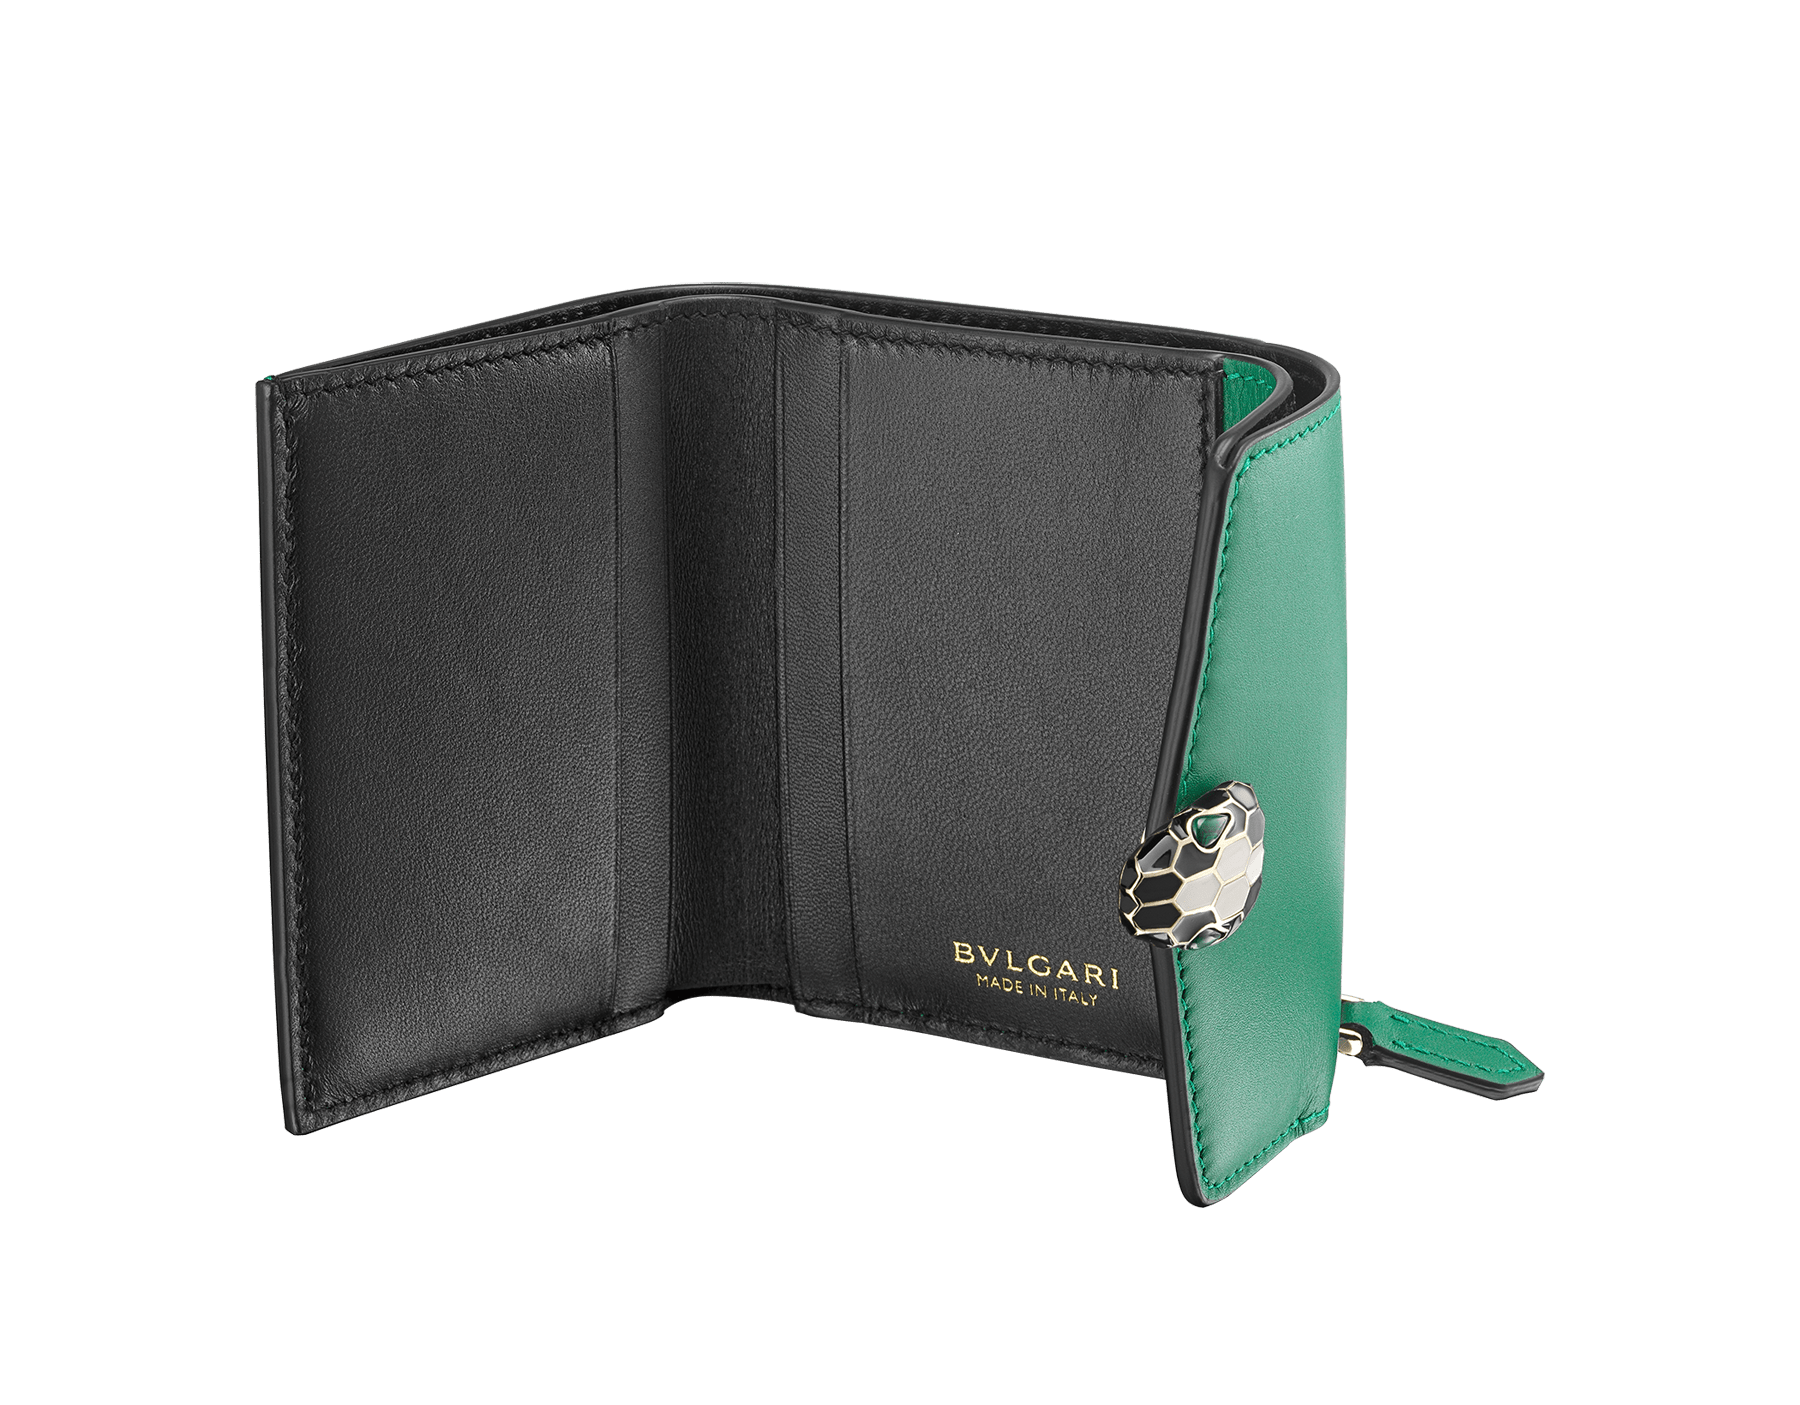 Serpenti Forever compact wallet in daisy topaz calf leather and white agate goatskin. Iconic light gold plated brass snake head stud closure in white agate and daisy topaz enamel, with black onyx eyes. SEA-SLIMCOMPACT-CLa image 4